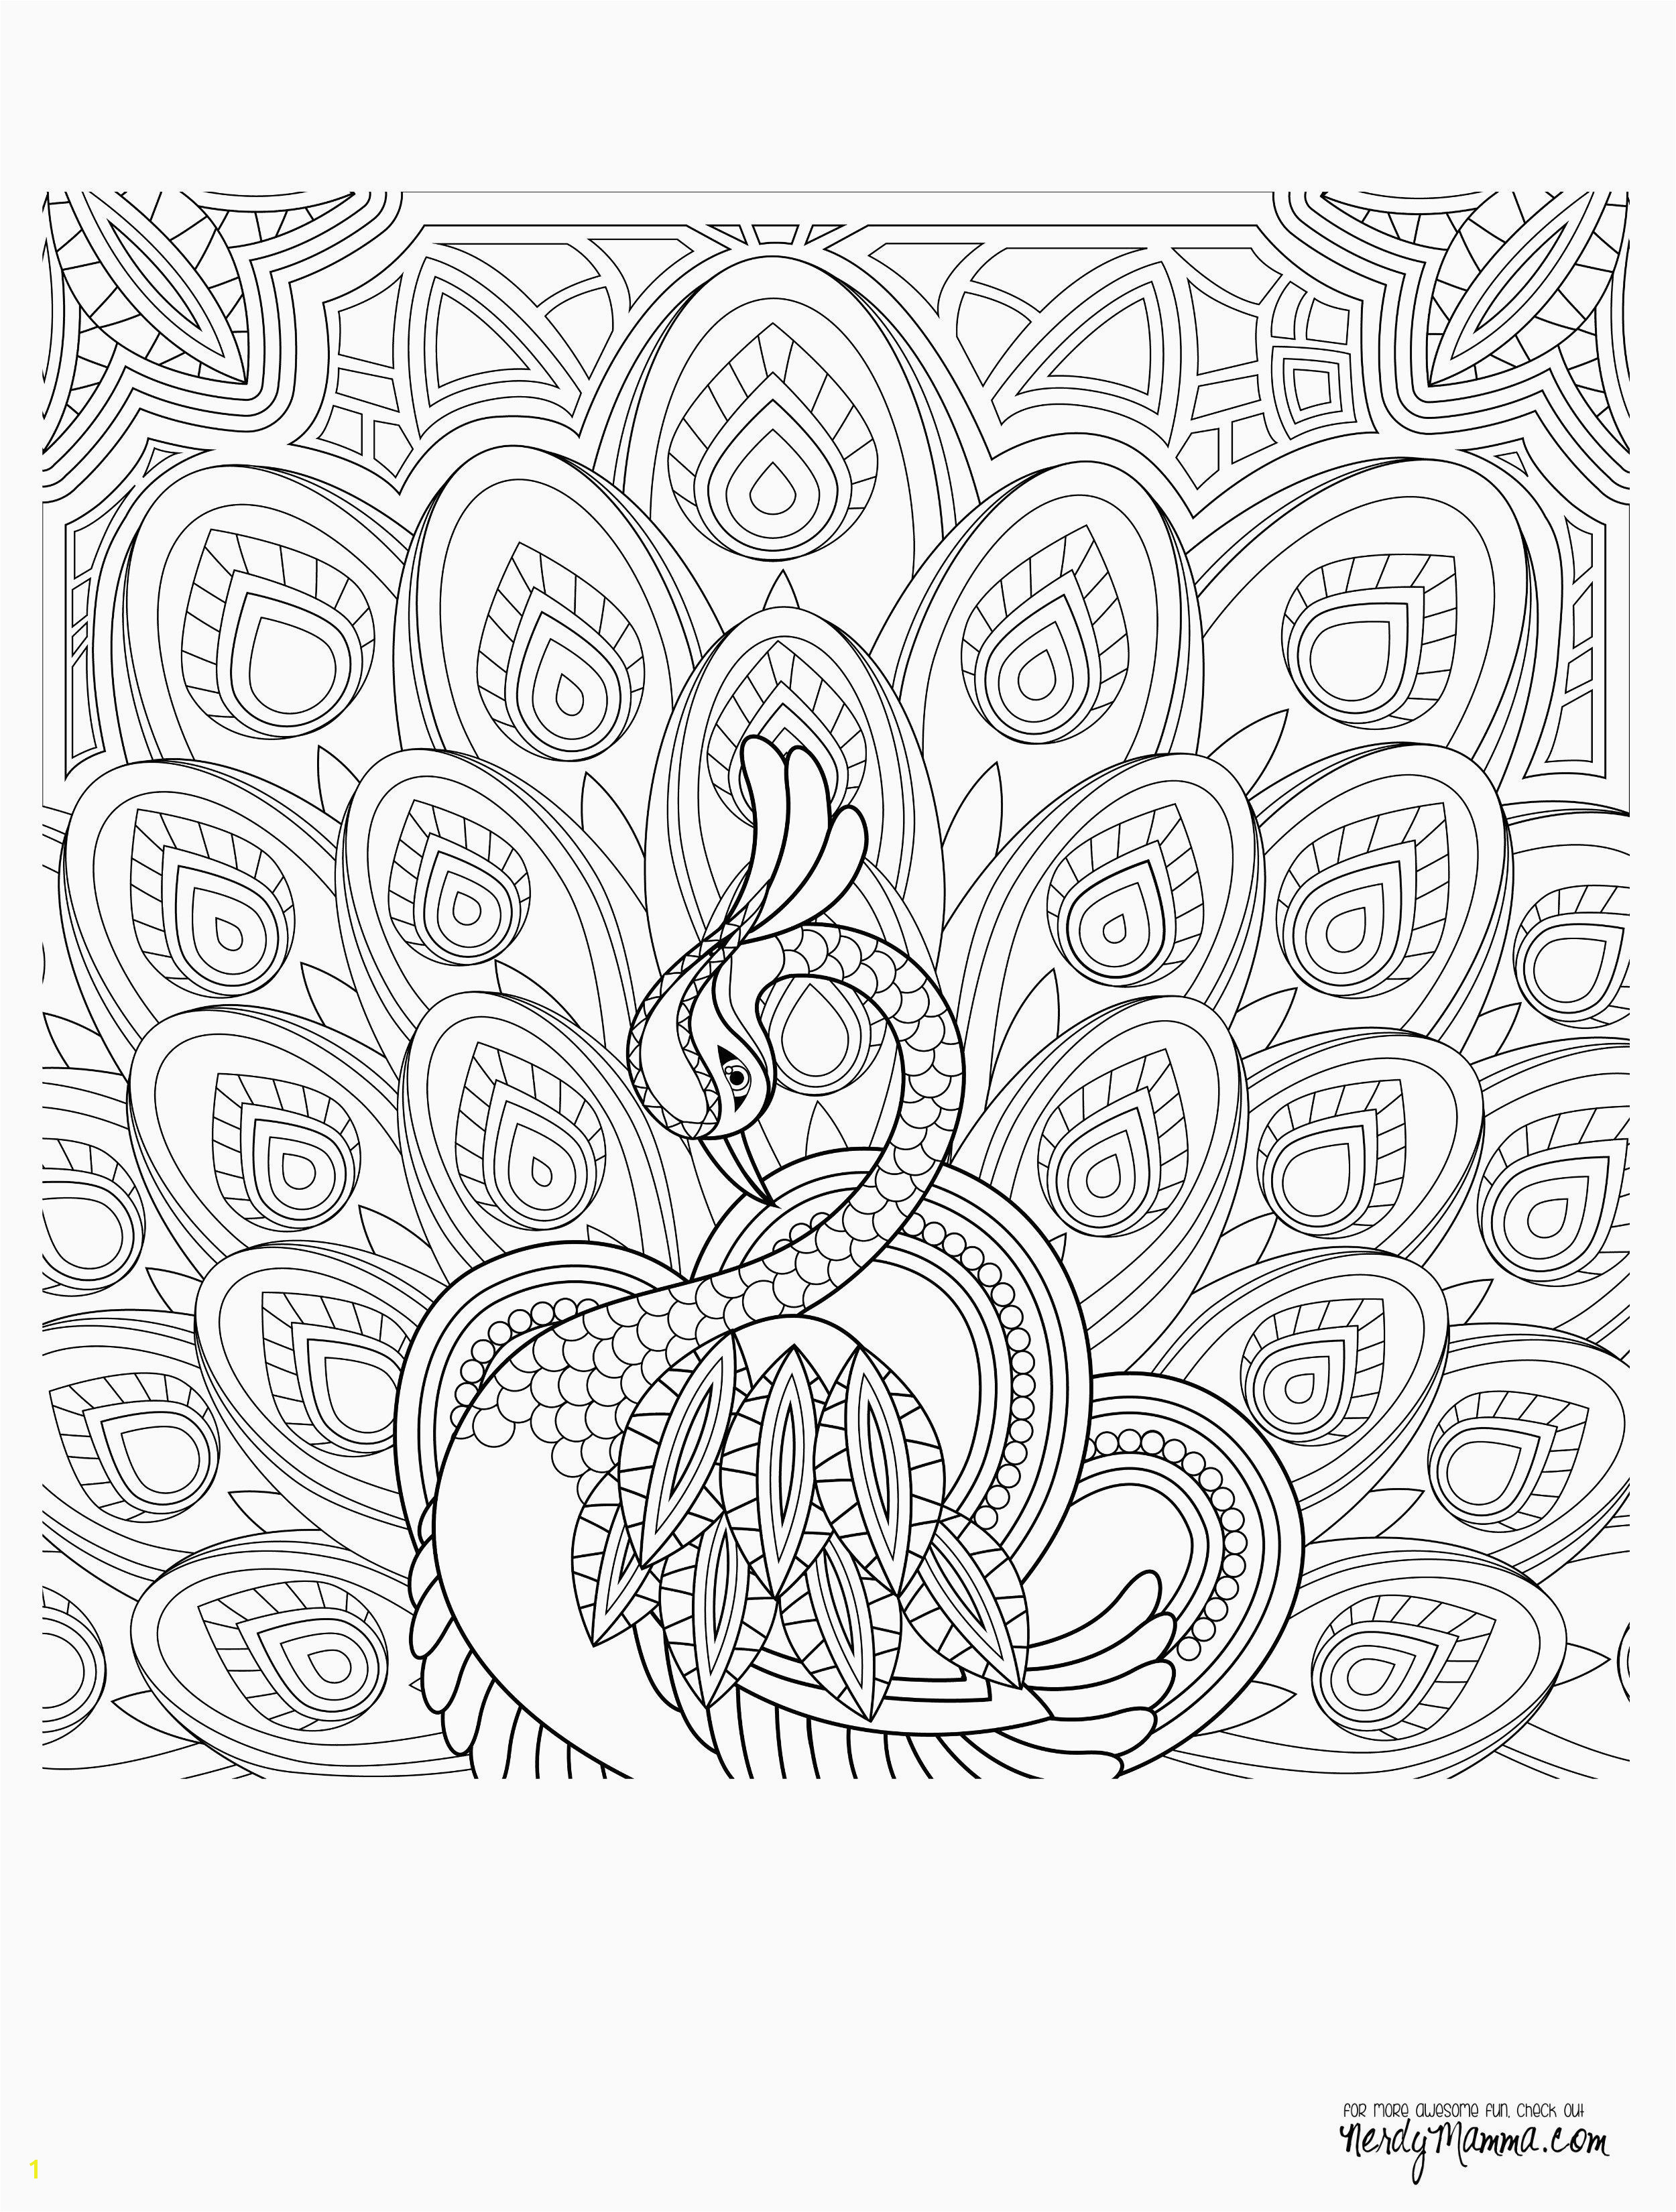 Free Printable Mandala Coloring Pages for Adults Free Printable Coloring Pages for Adults Best Awesome Coloring